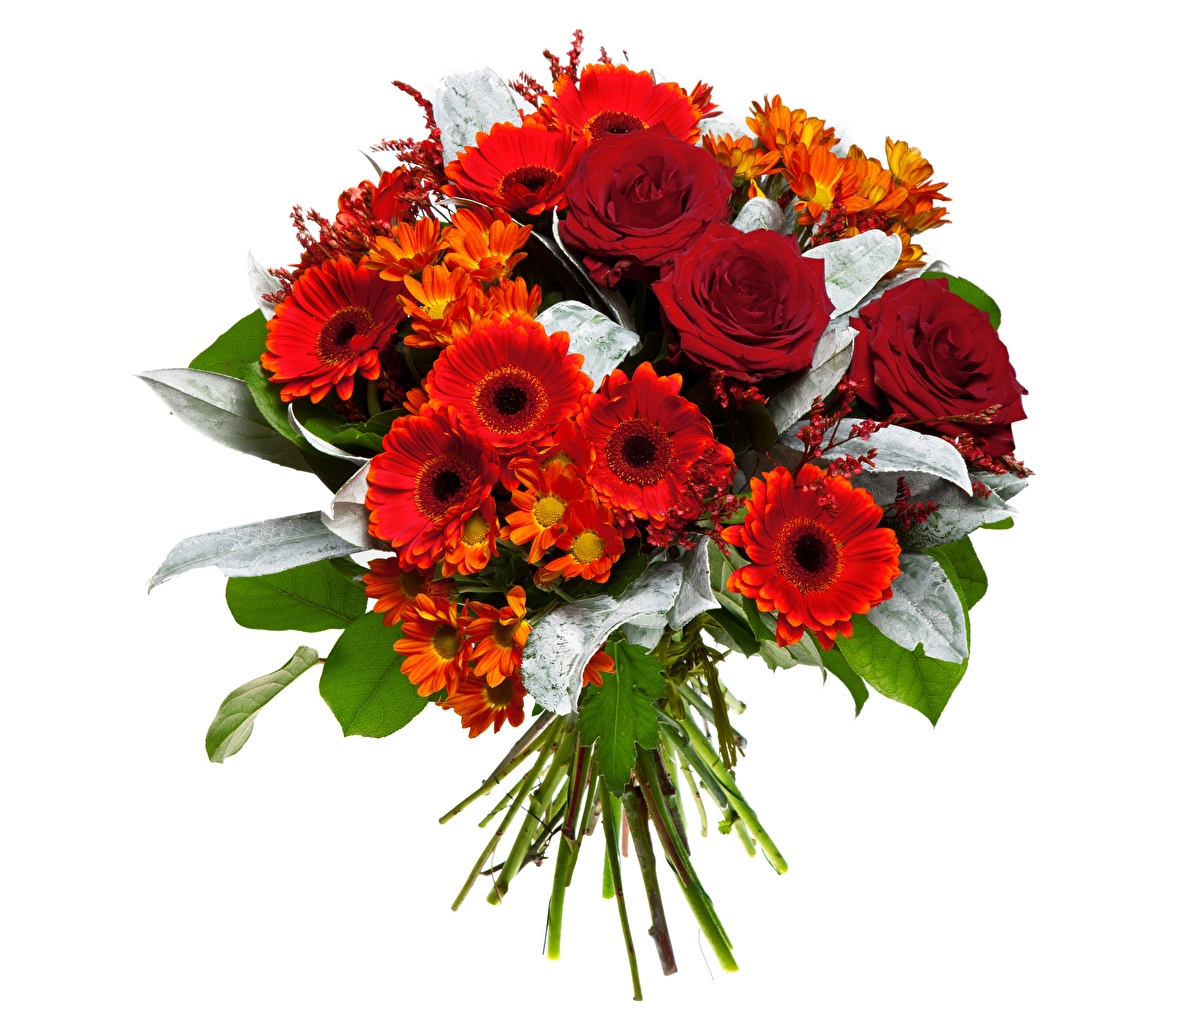 Picture Bouquets Red Roses gerbera flower Chrysanths White background bouquet rose Gerberas Mums Flowers Chrysanthemums